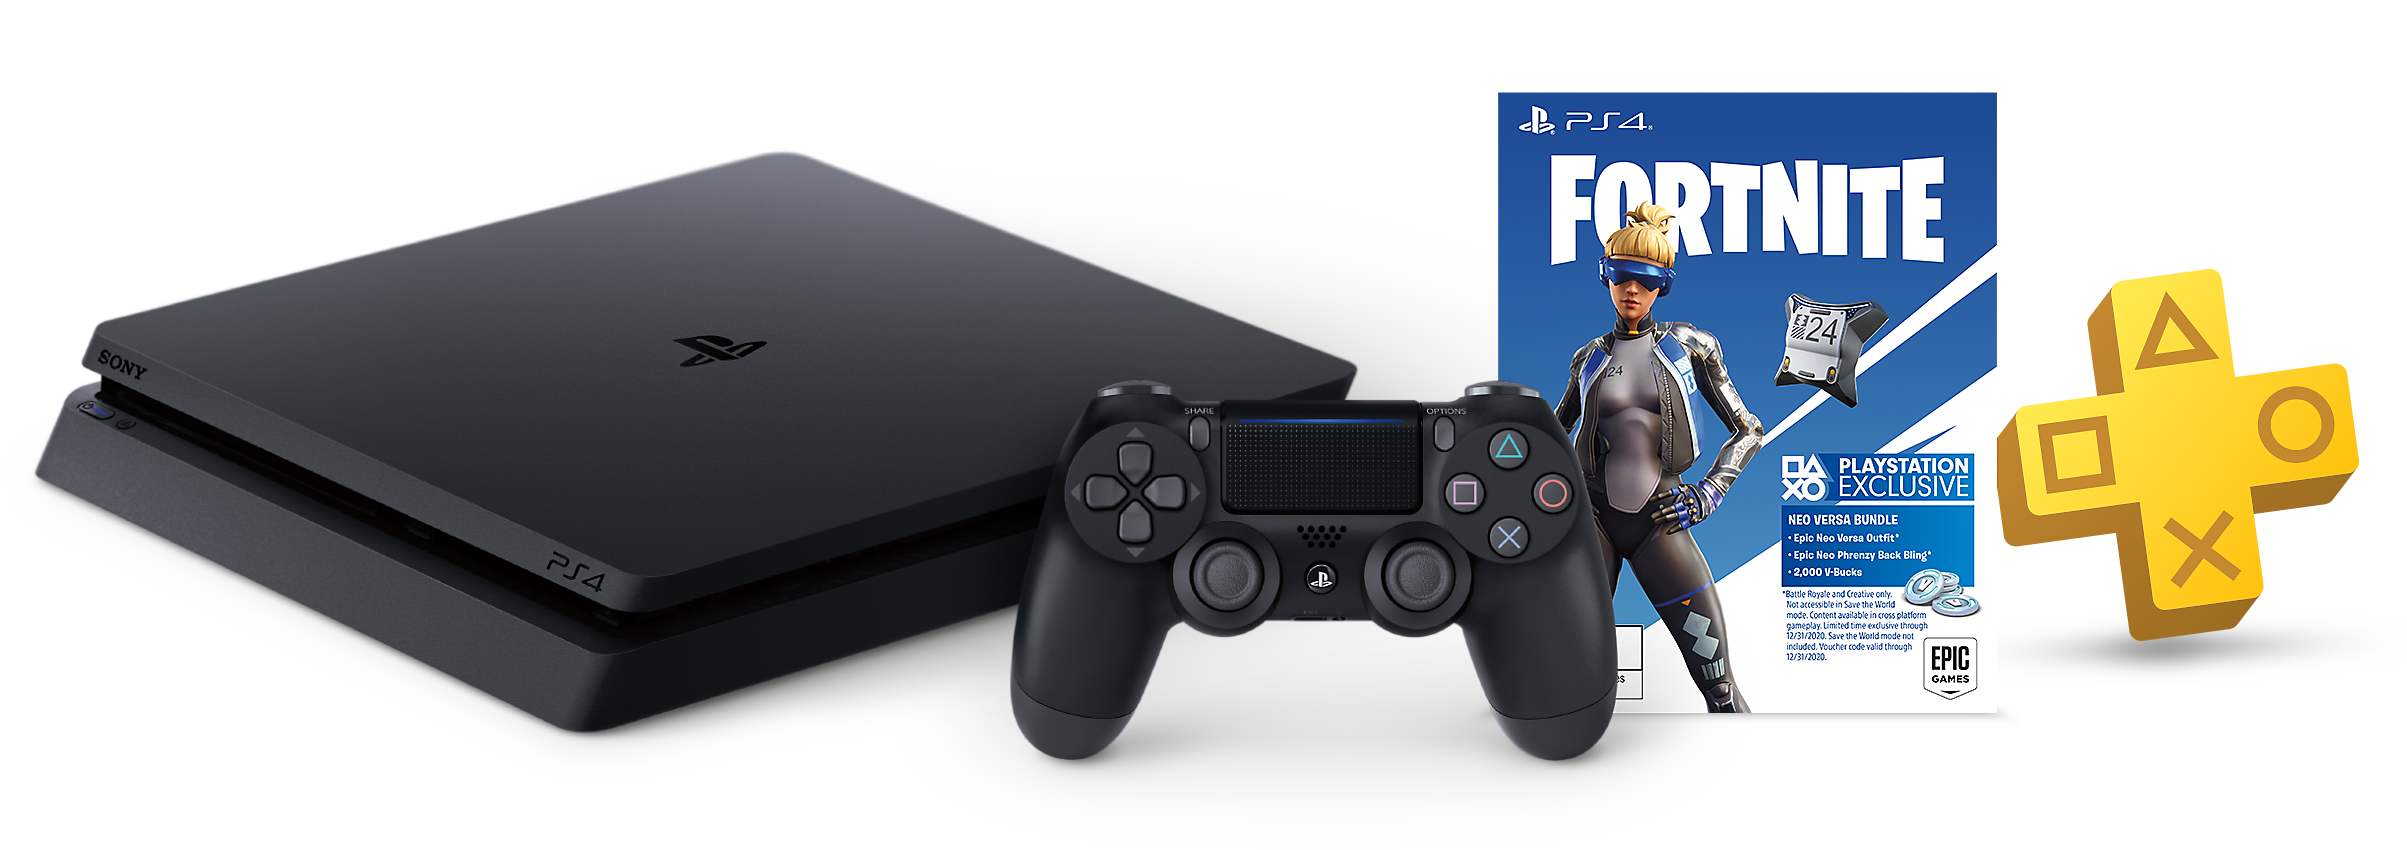 Fortnite Neo Versa Bundle for PS4